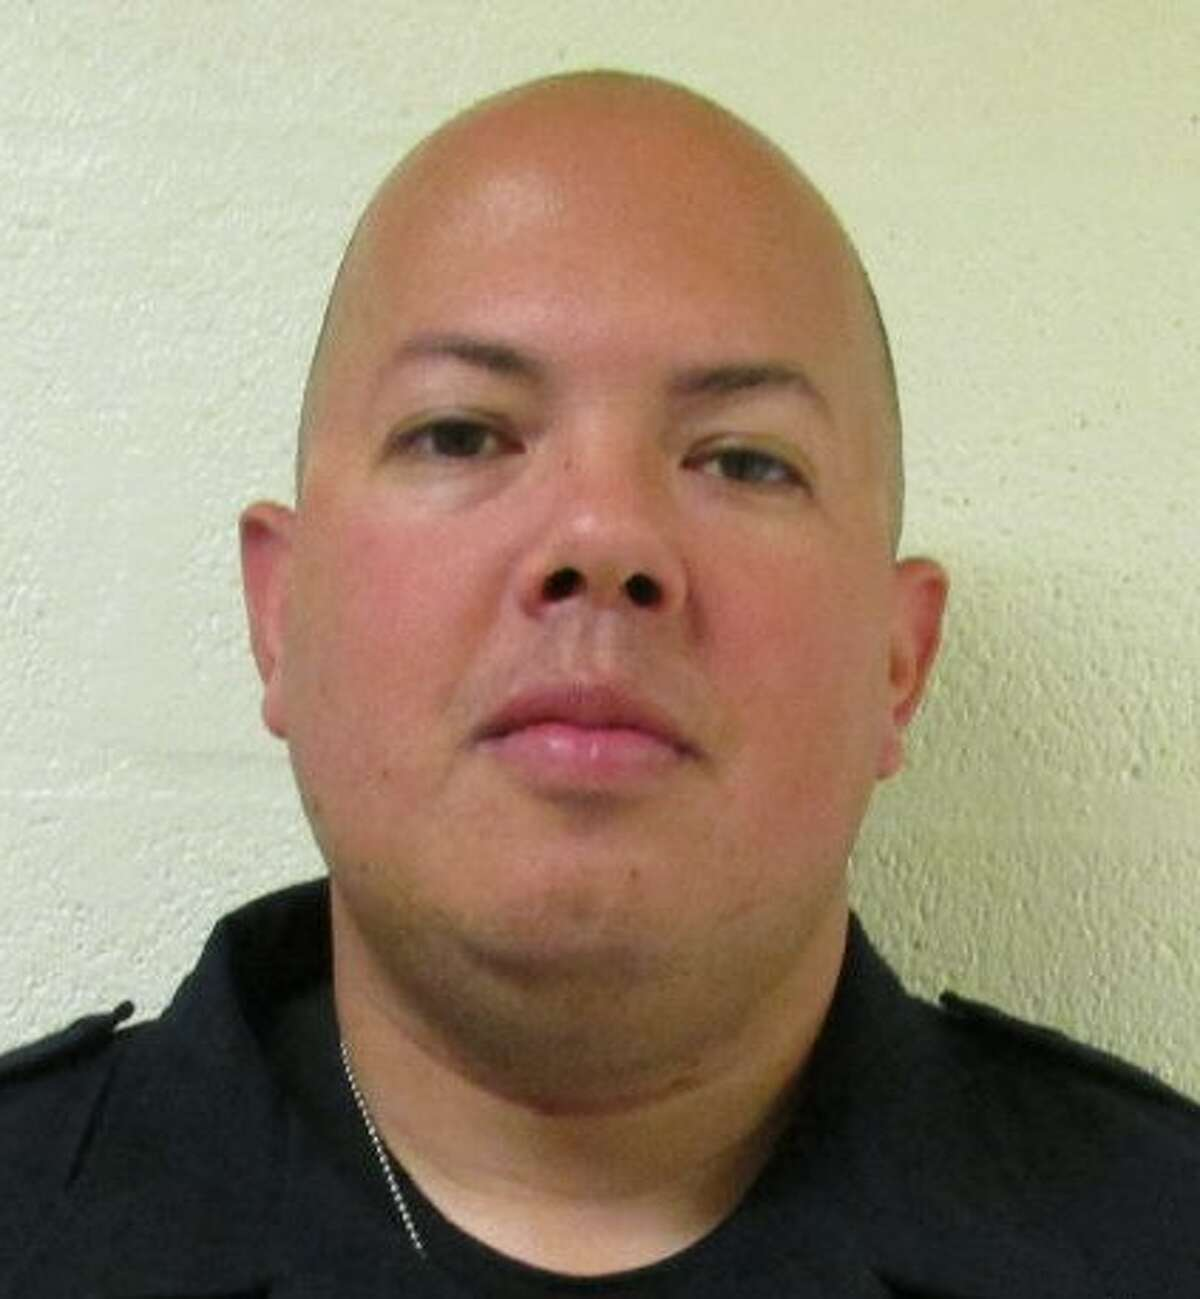 Corporal Justin Storlie, 35, was arrested Monday on a domestic violence charge.